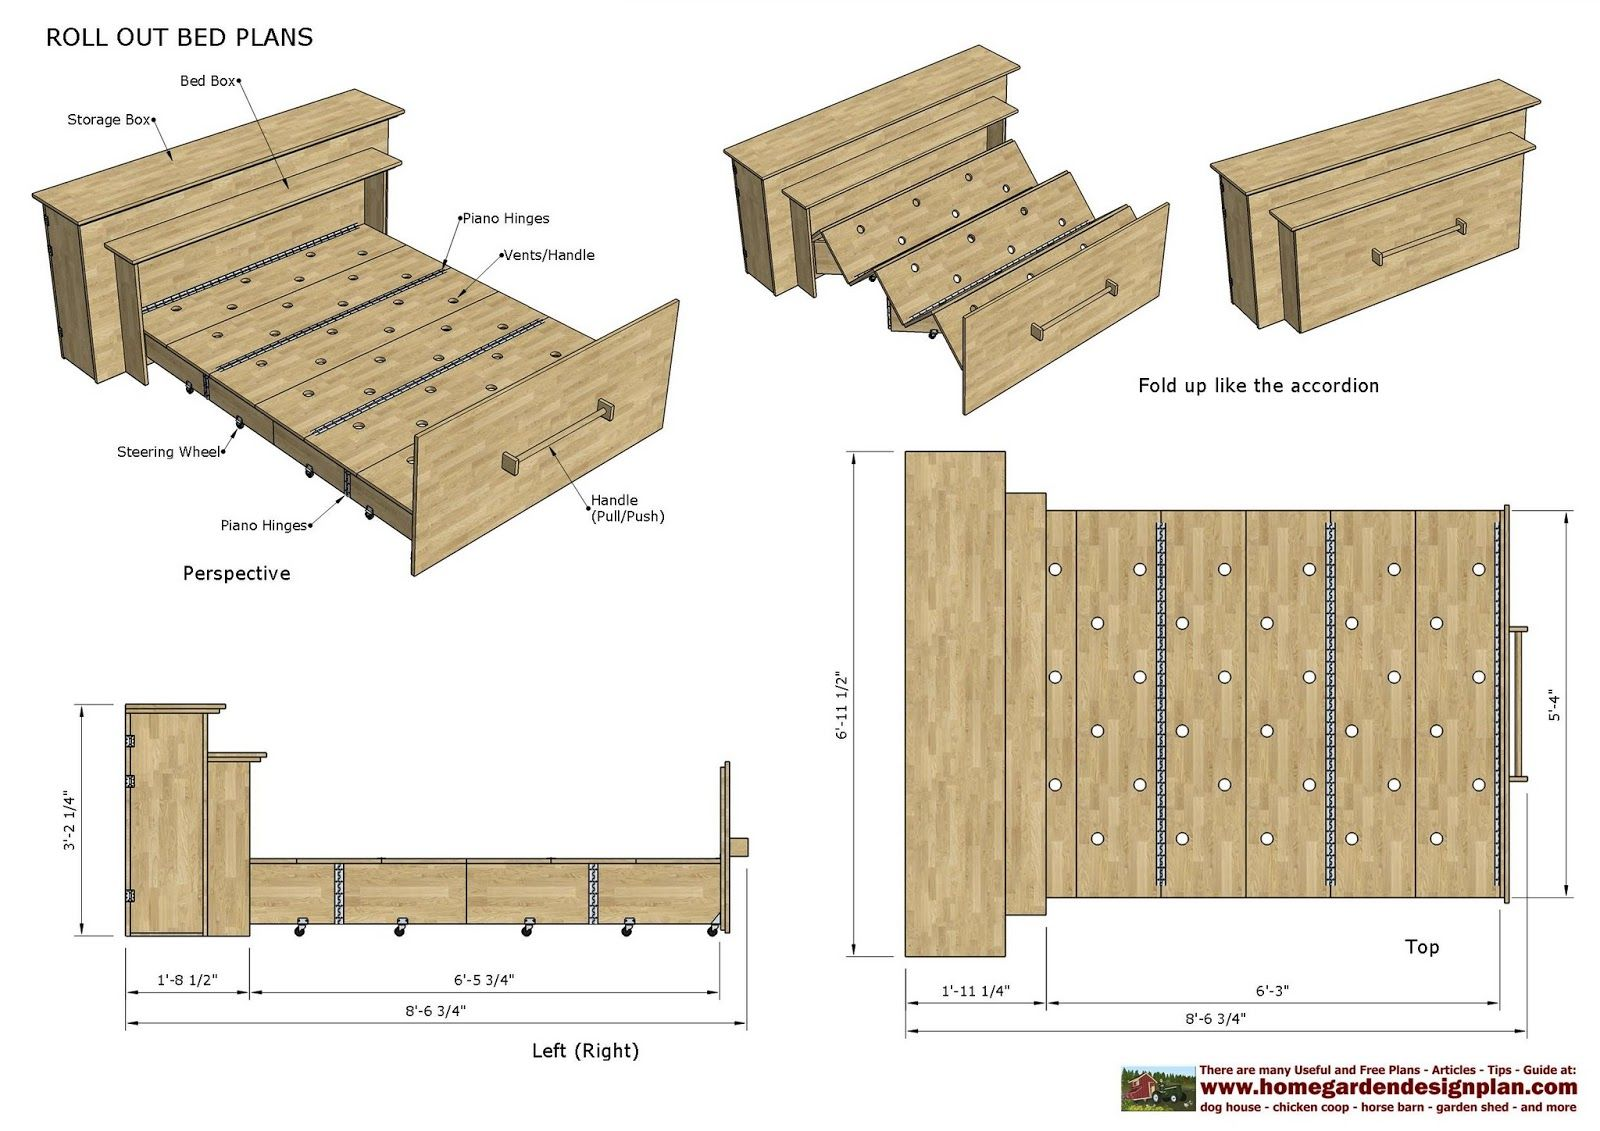 ROB100 - Roll Out Bed Plans Construction - Smart B